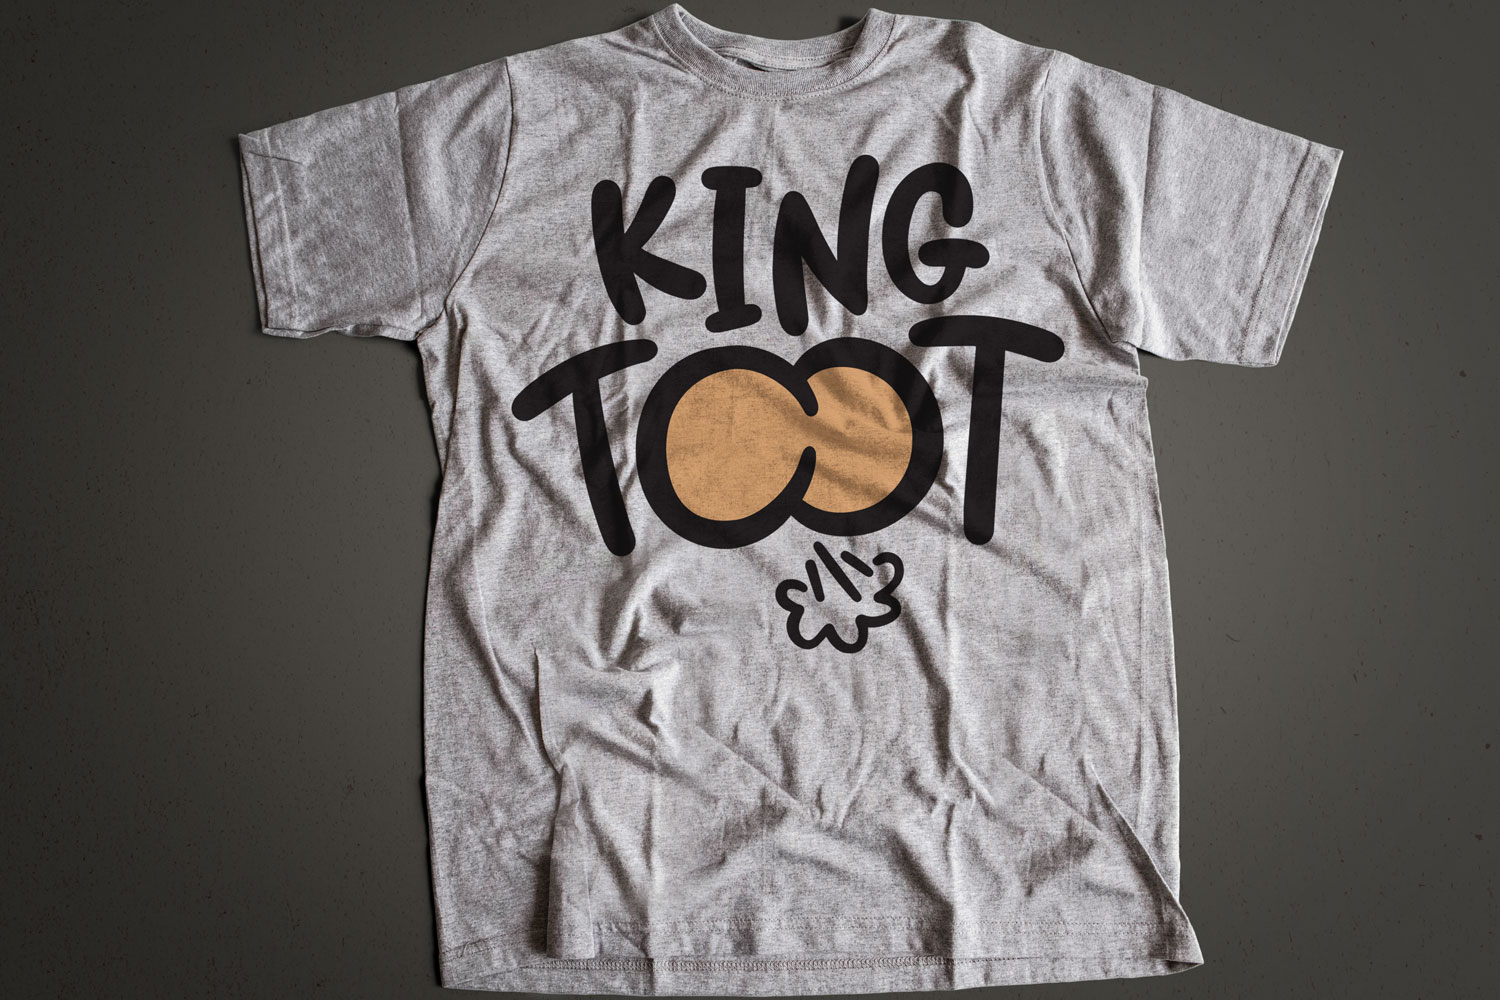 King Toot - Hand-Lettered Cut File Design example image 2